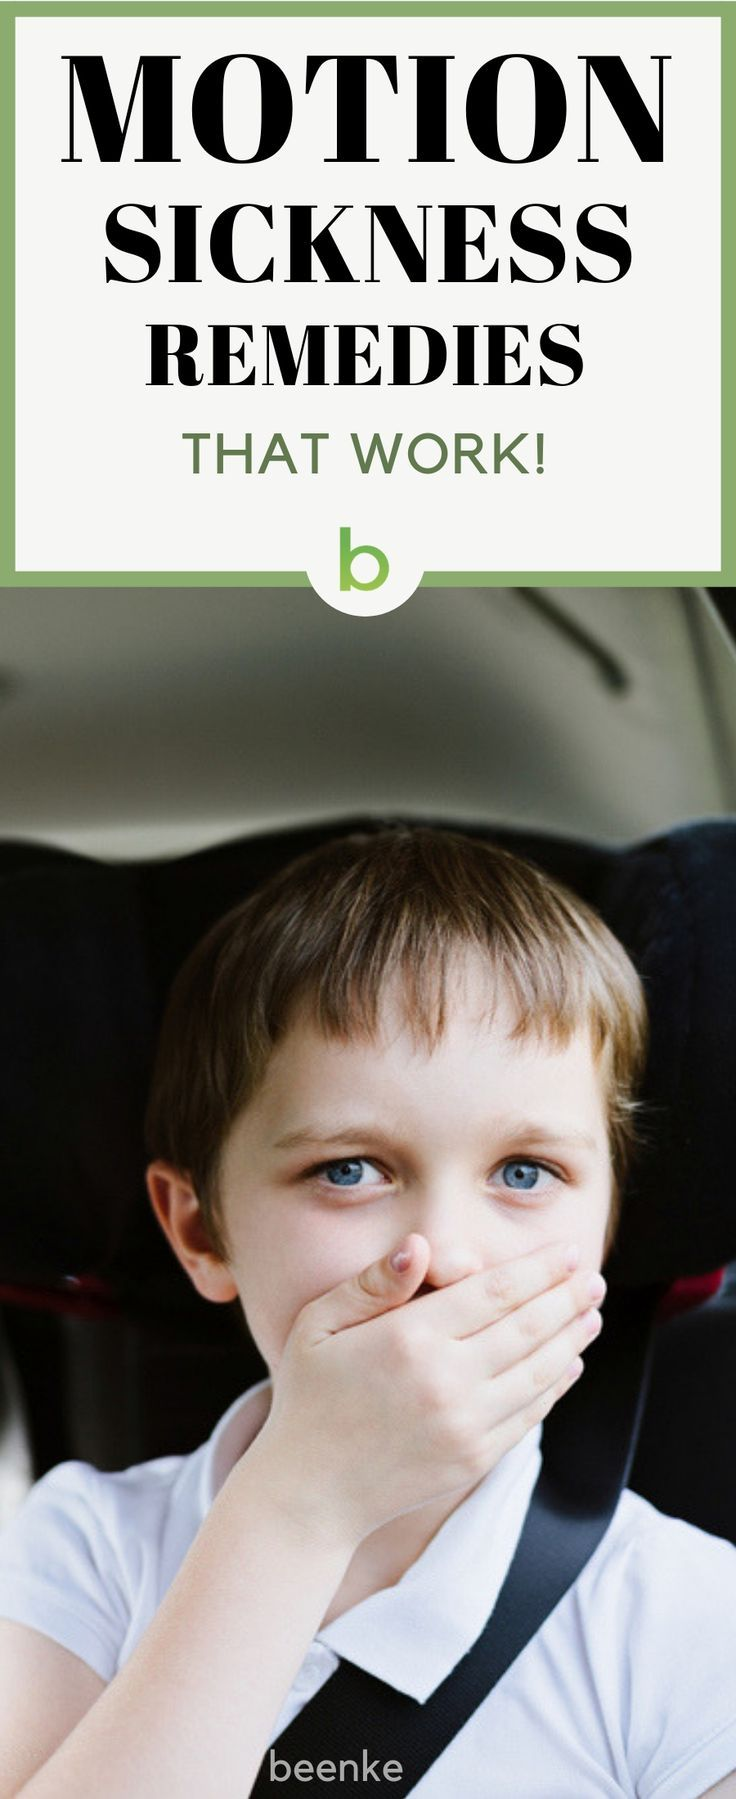 How To Get Rid Of Nausea From Car Sickness